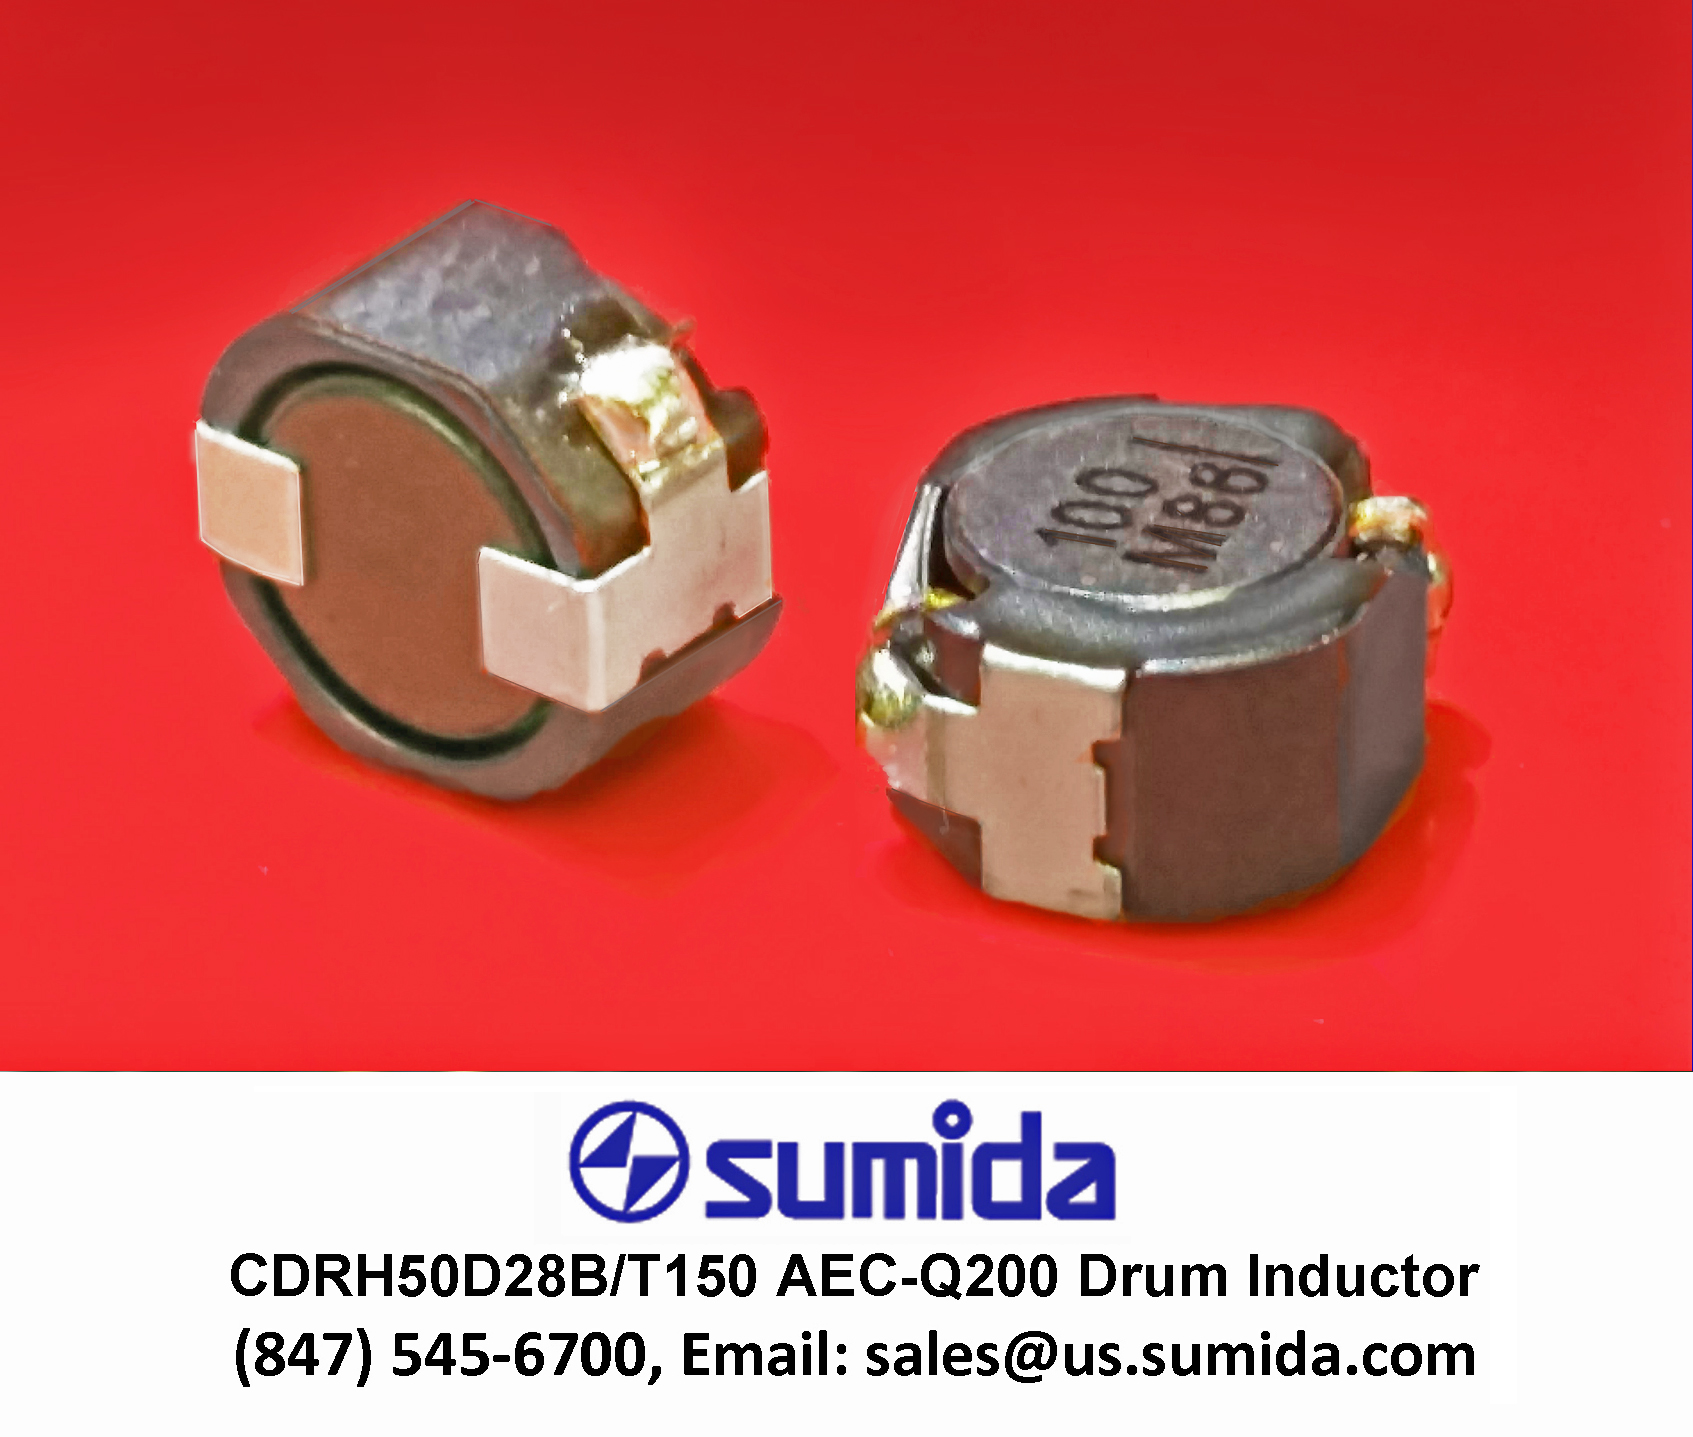 Shielded Drum Inductor Designed for Automotive Applications